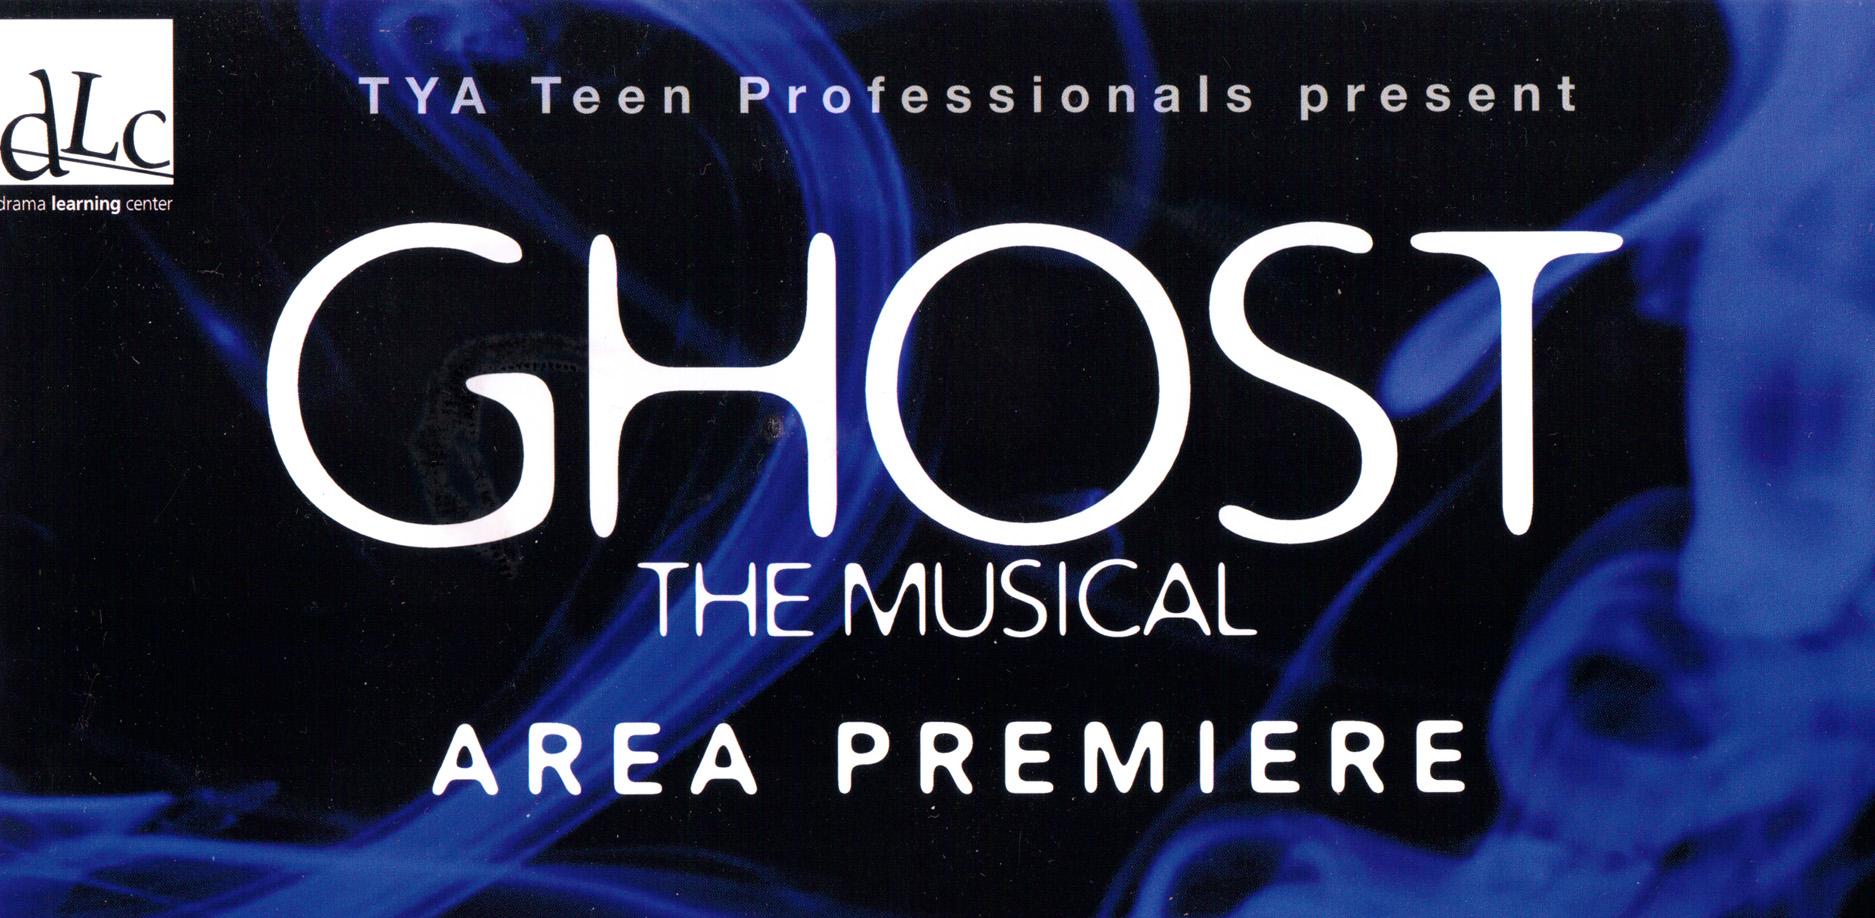 'Ghost: The Musical' at the Drama Learning Center and TYA